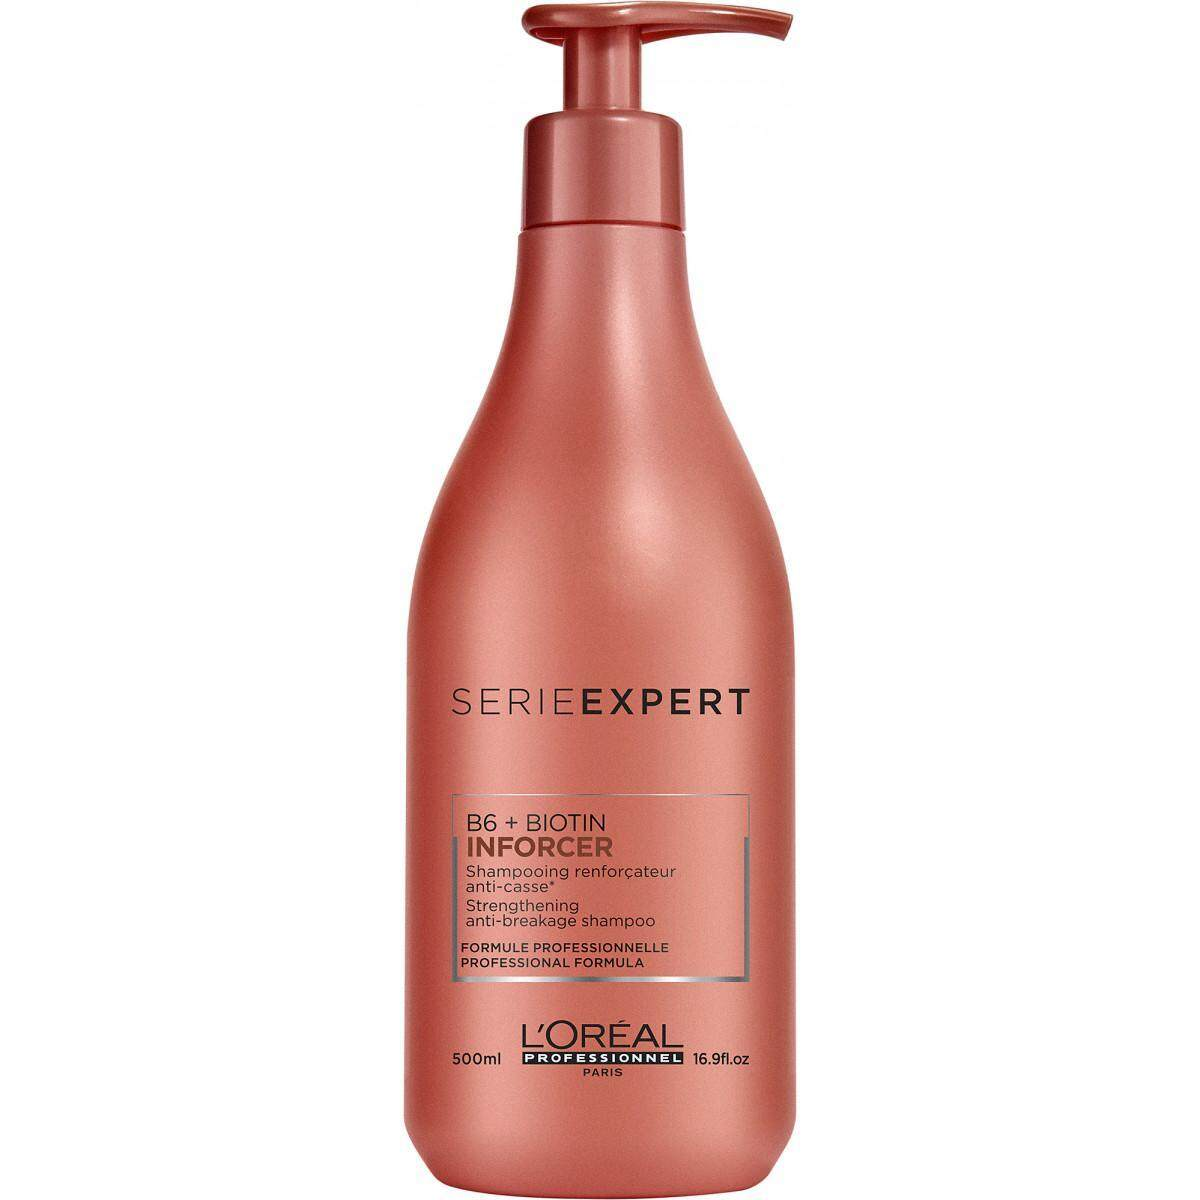 Loreal Professionnel Serie Expert Inforcer B6+Biotin Shampoo (500ml) (for Damage Hair)